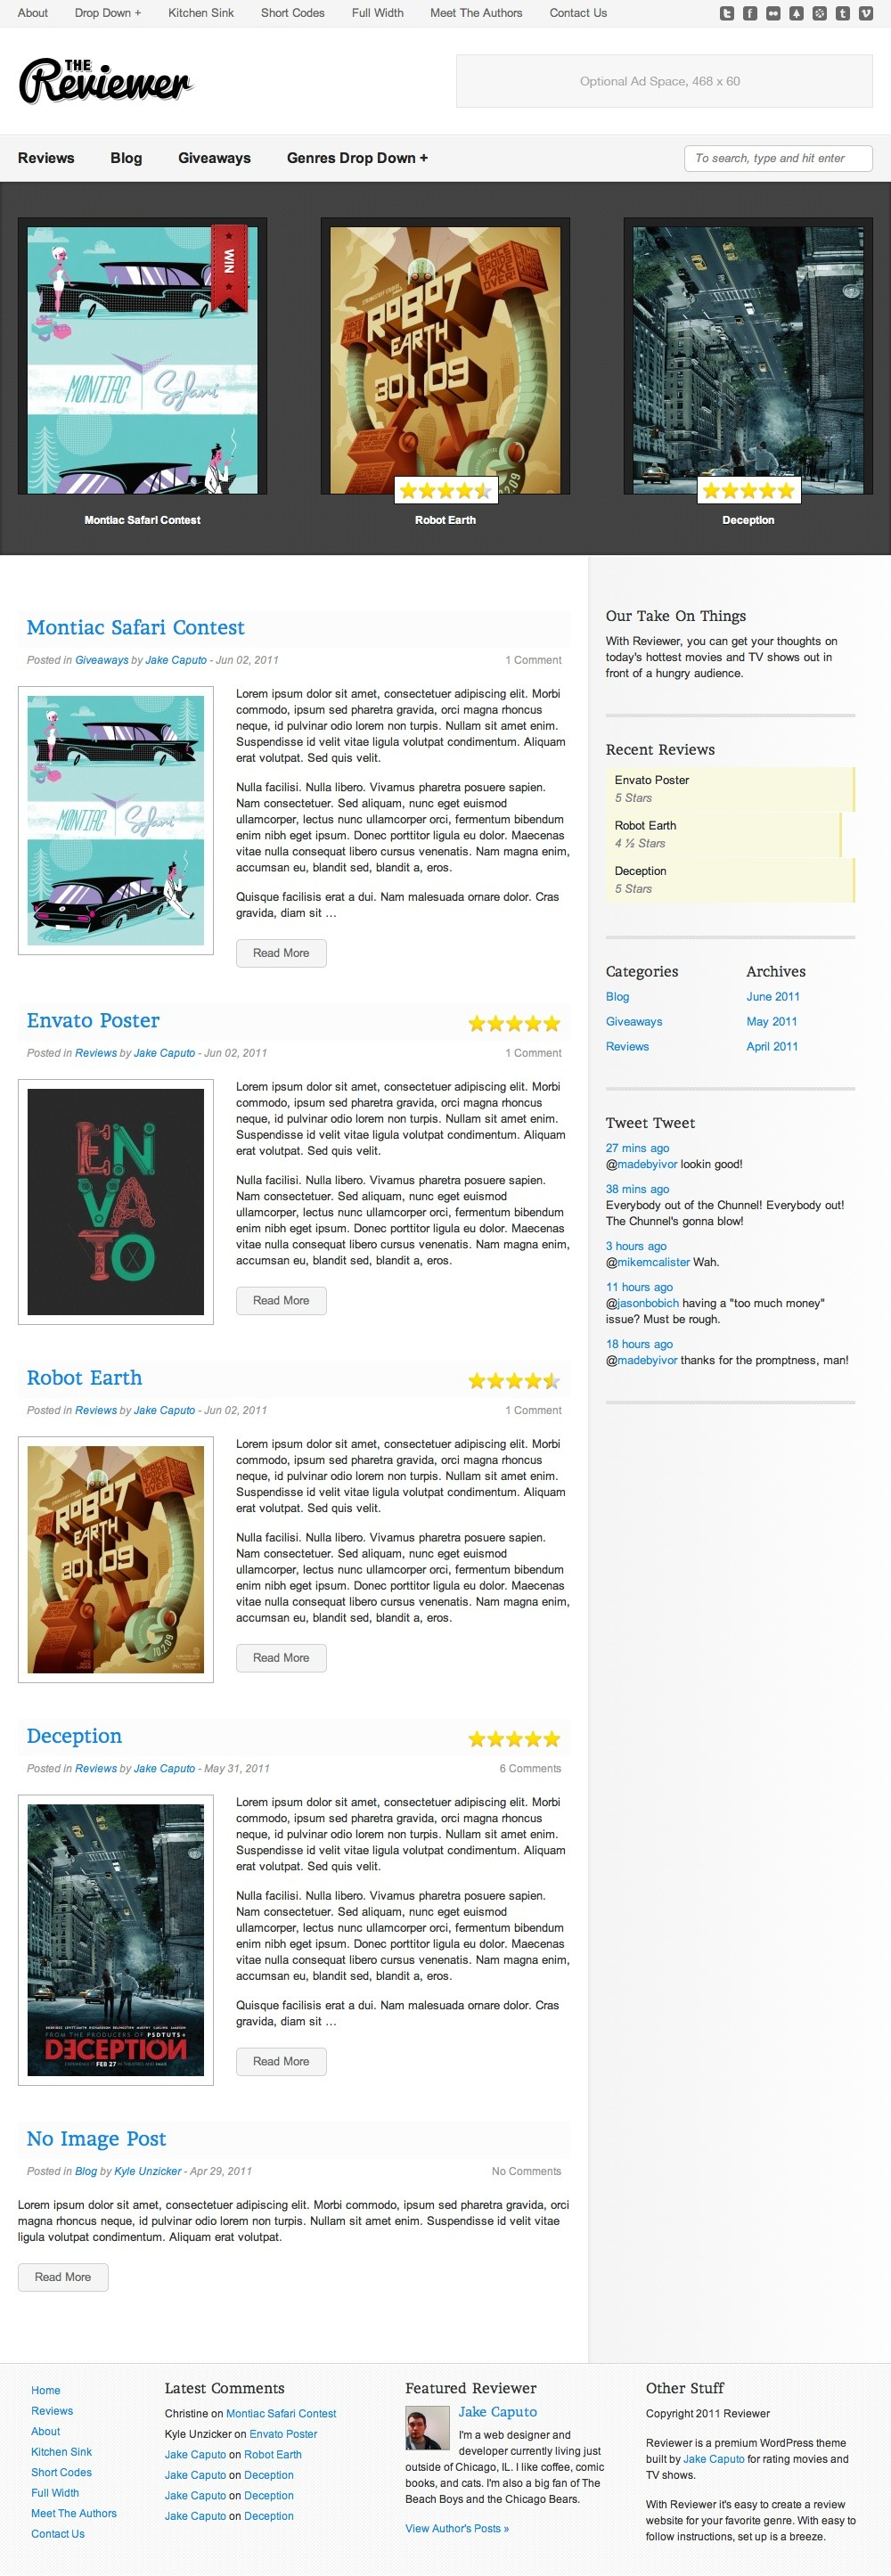 Reviewer - WP Theme for Entertainment Reviews - The Reviewer Home page has a dark (with an optional light counterpart) featured post area that is controlled by WordPress sticky posts, as well as a custom Recent Reviews bar graph style widget.